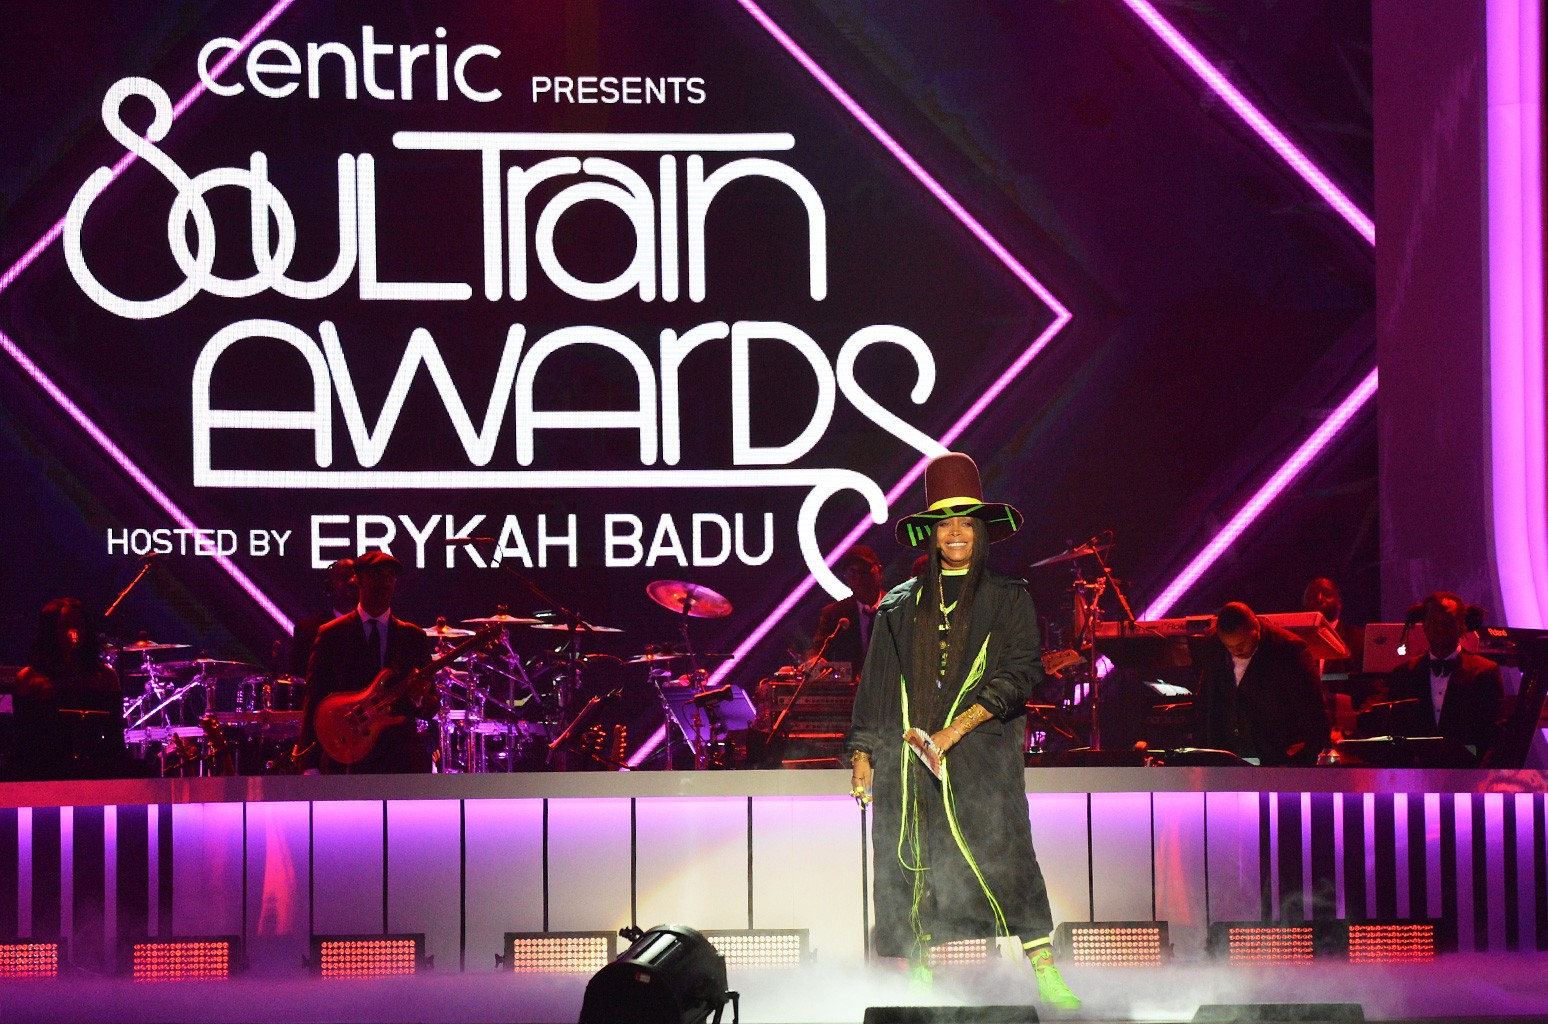 Erykah Badu speaks onstage during the 2016 Soul Train Music Awards at the Orleans Arena on Nov. 6, 2016 in Las Vegas.